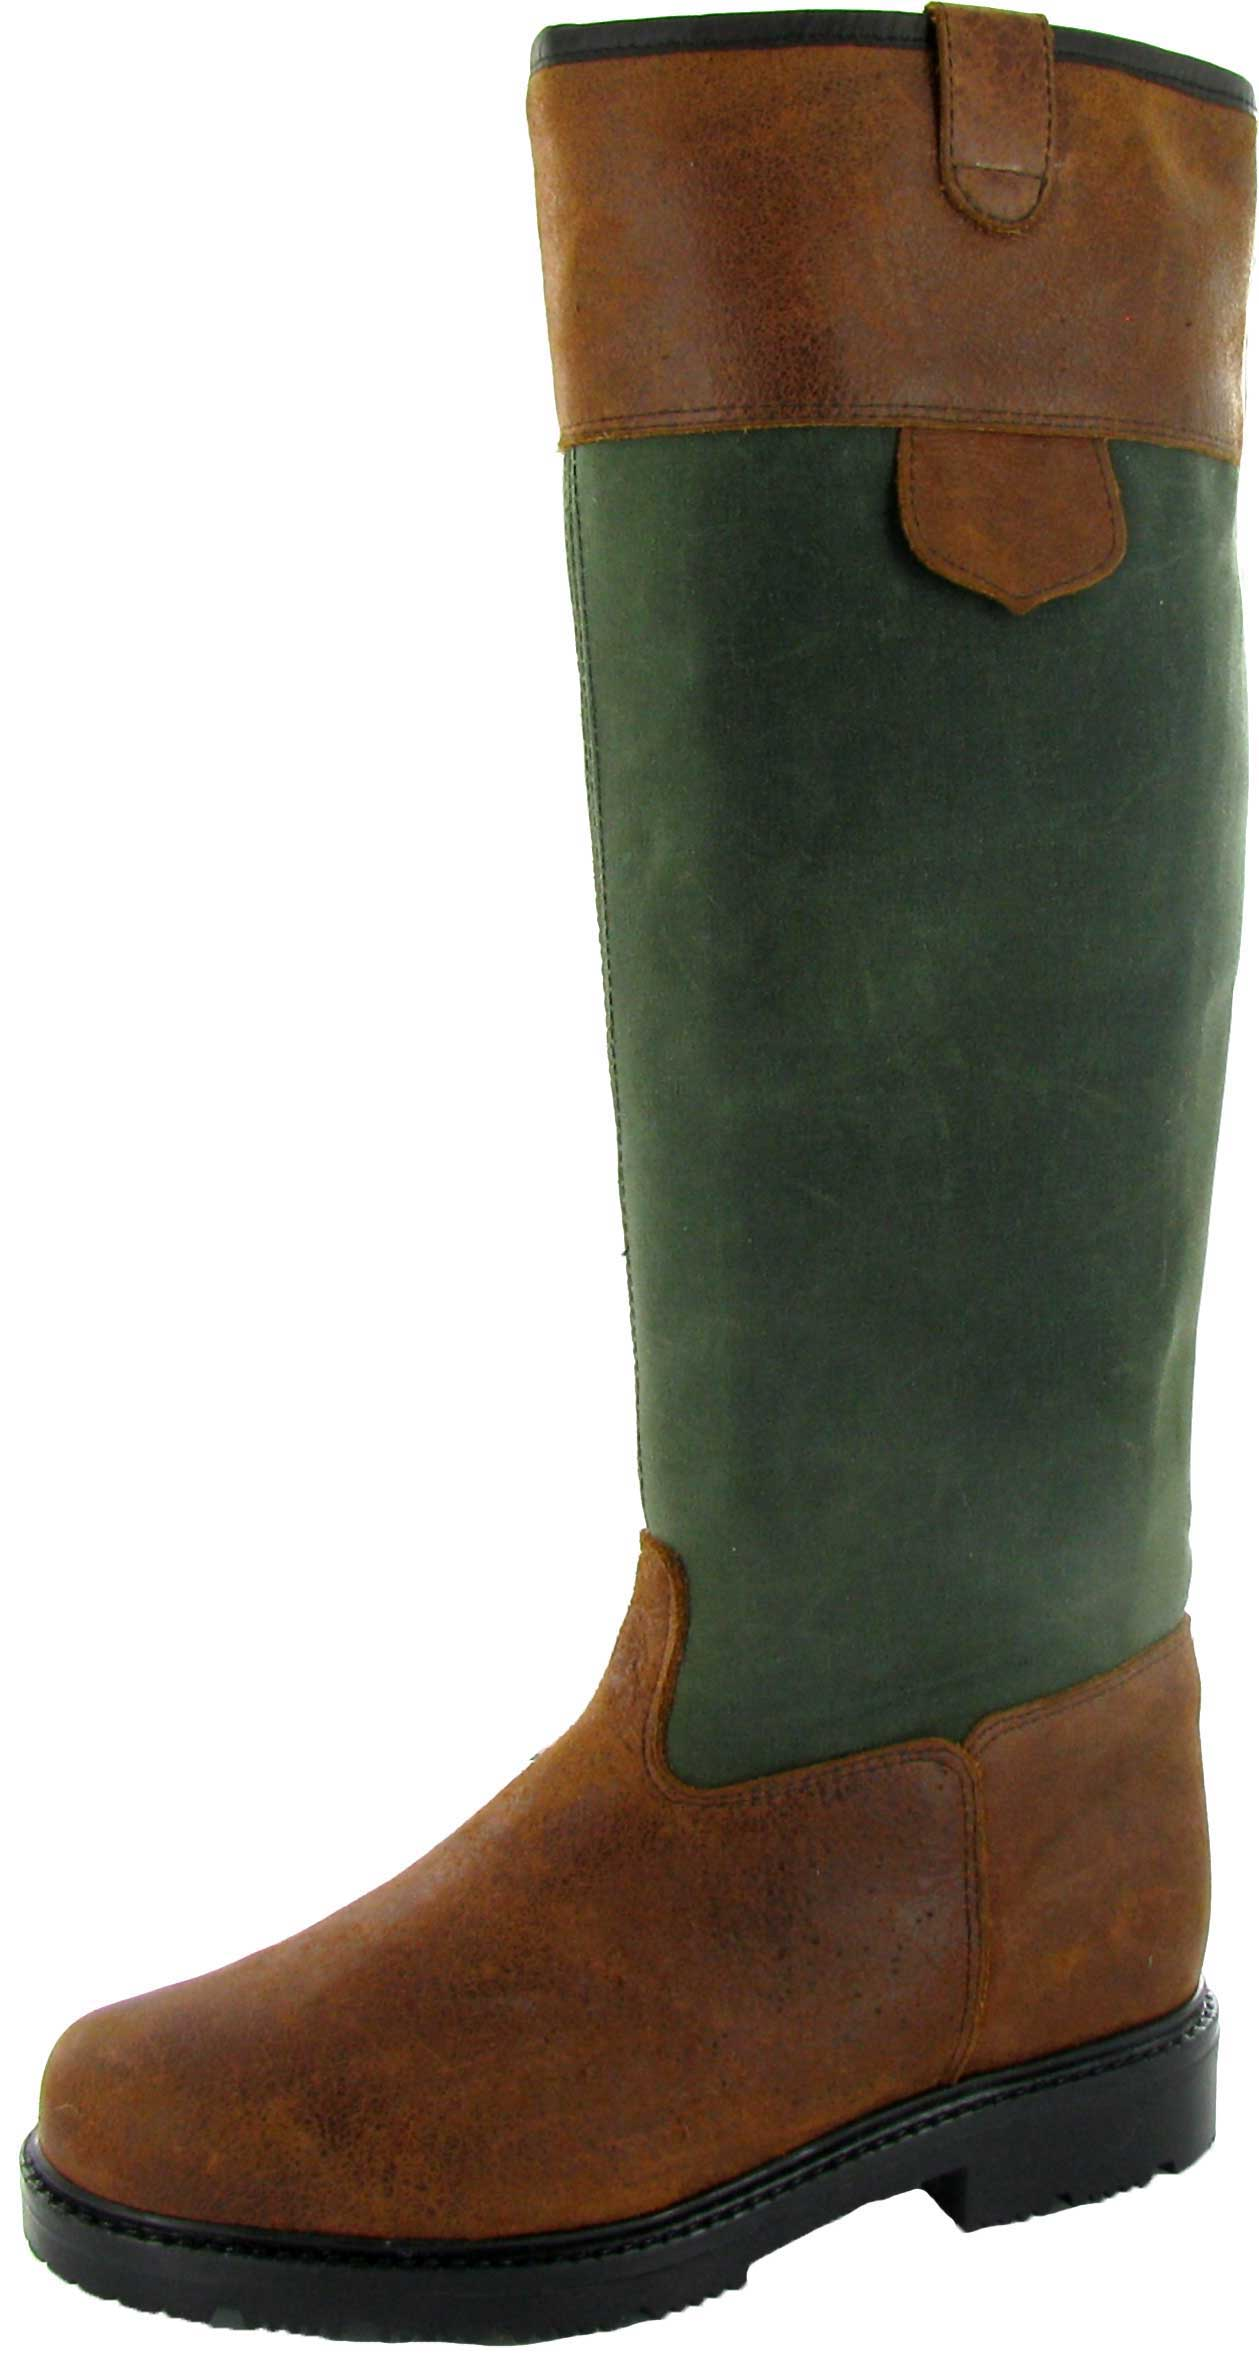 Paul Brodie Green Oil Skin Boots w Brown Leather